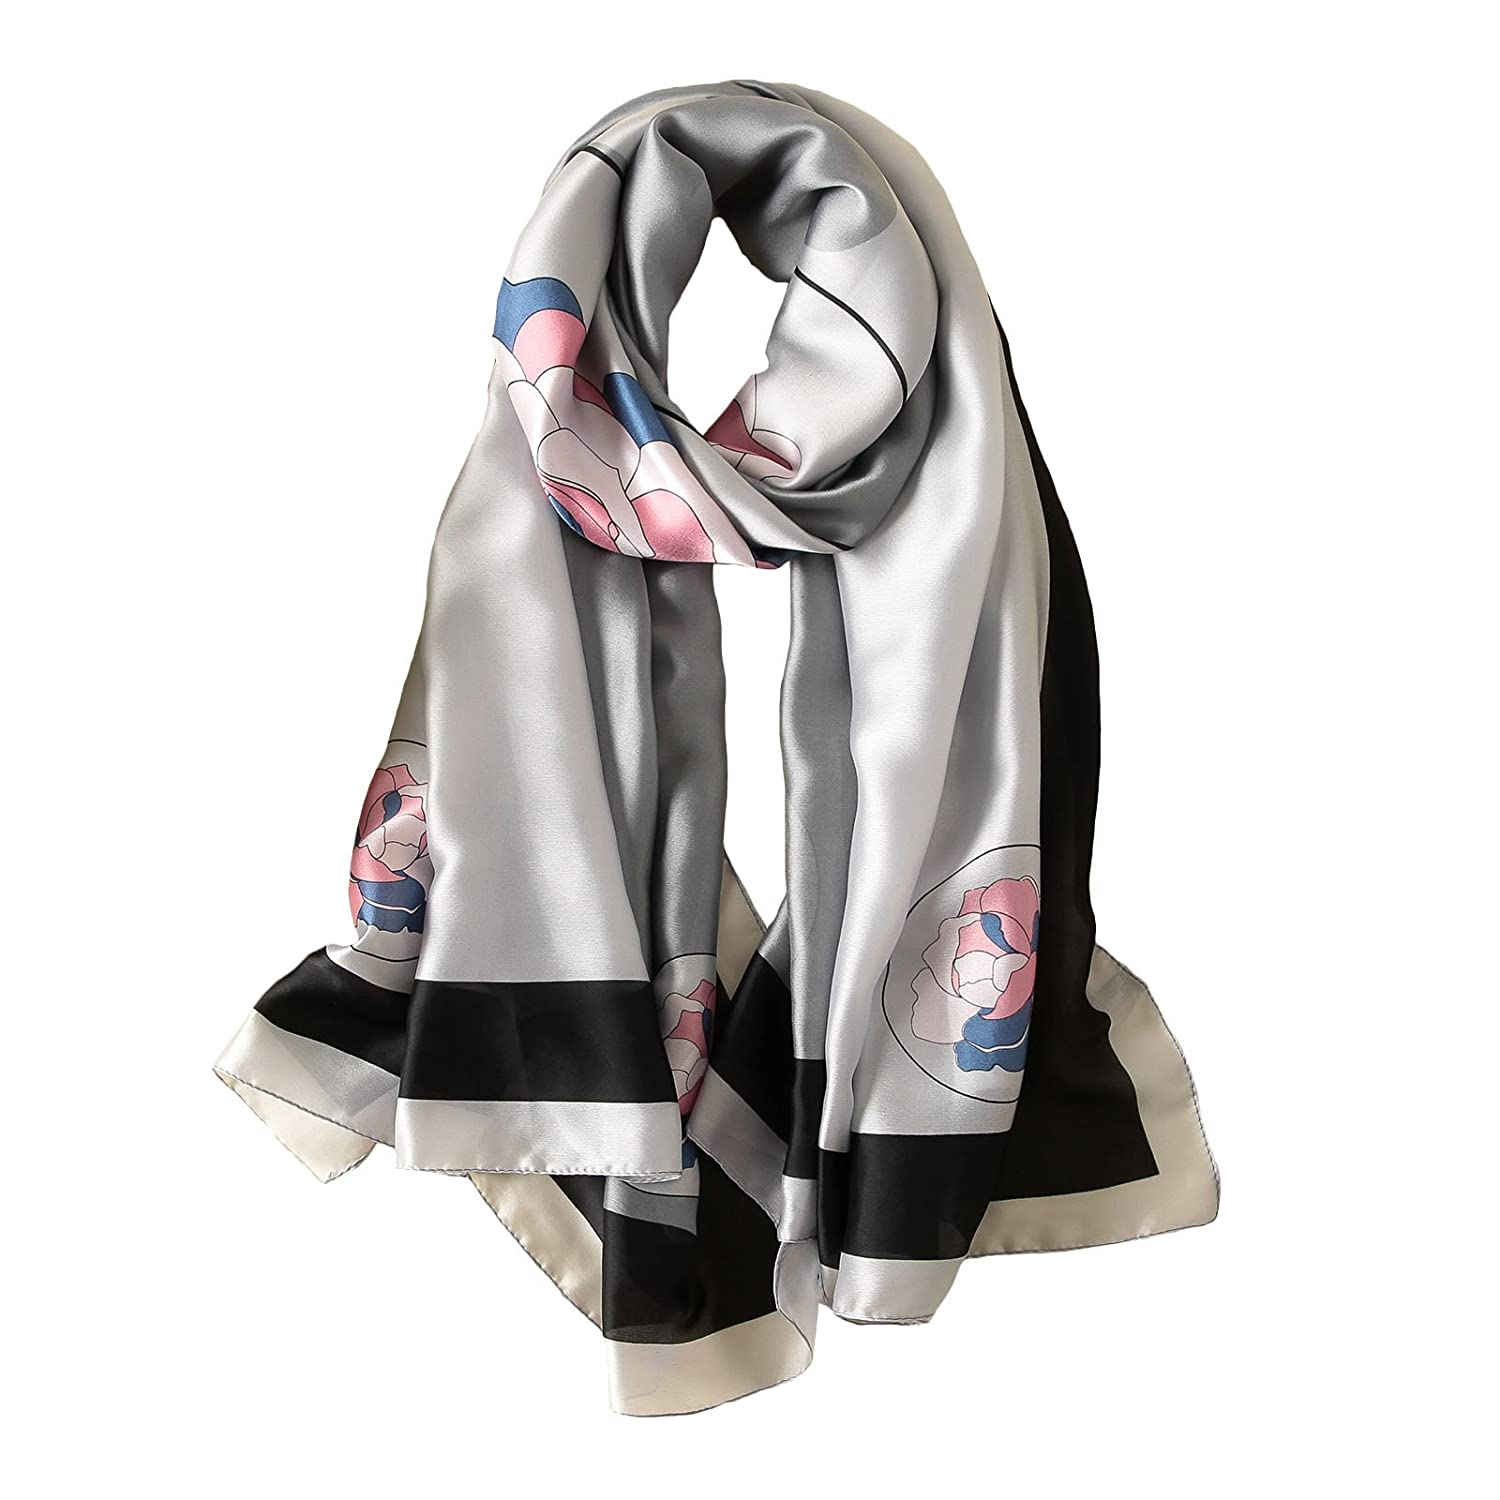 100% Mulberry Silk Scarf Women's Fashion Pattern Large Satin Headscarf Ladies Floral Satin Scarf Gift for Valentine's Day ((Flower grey))